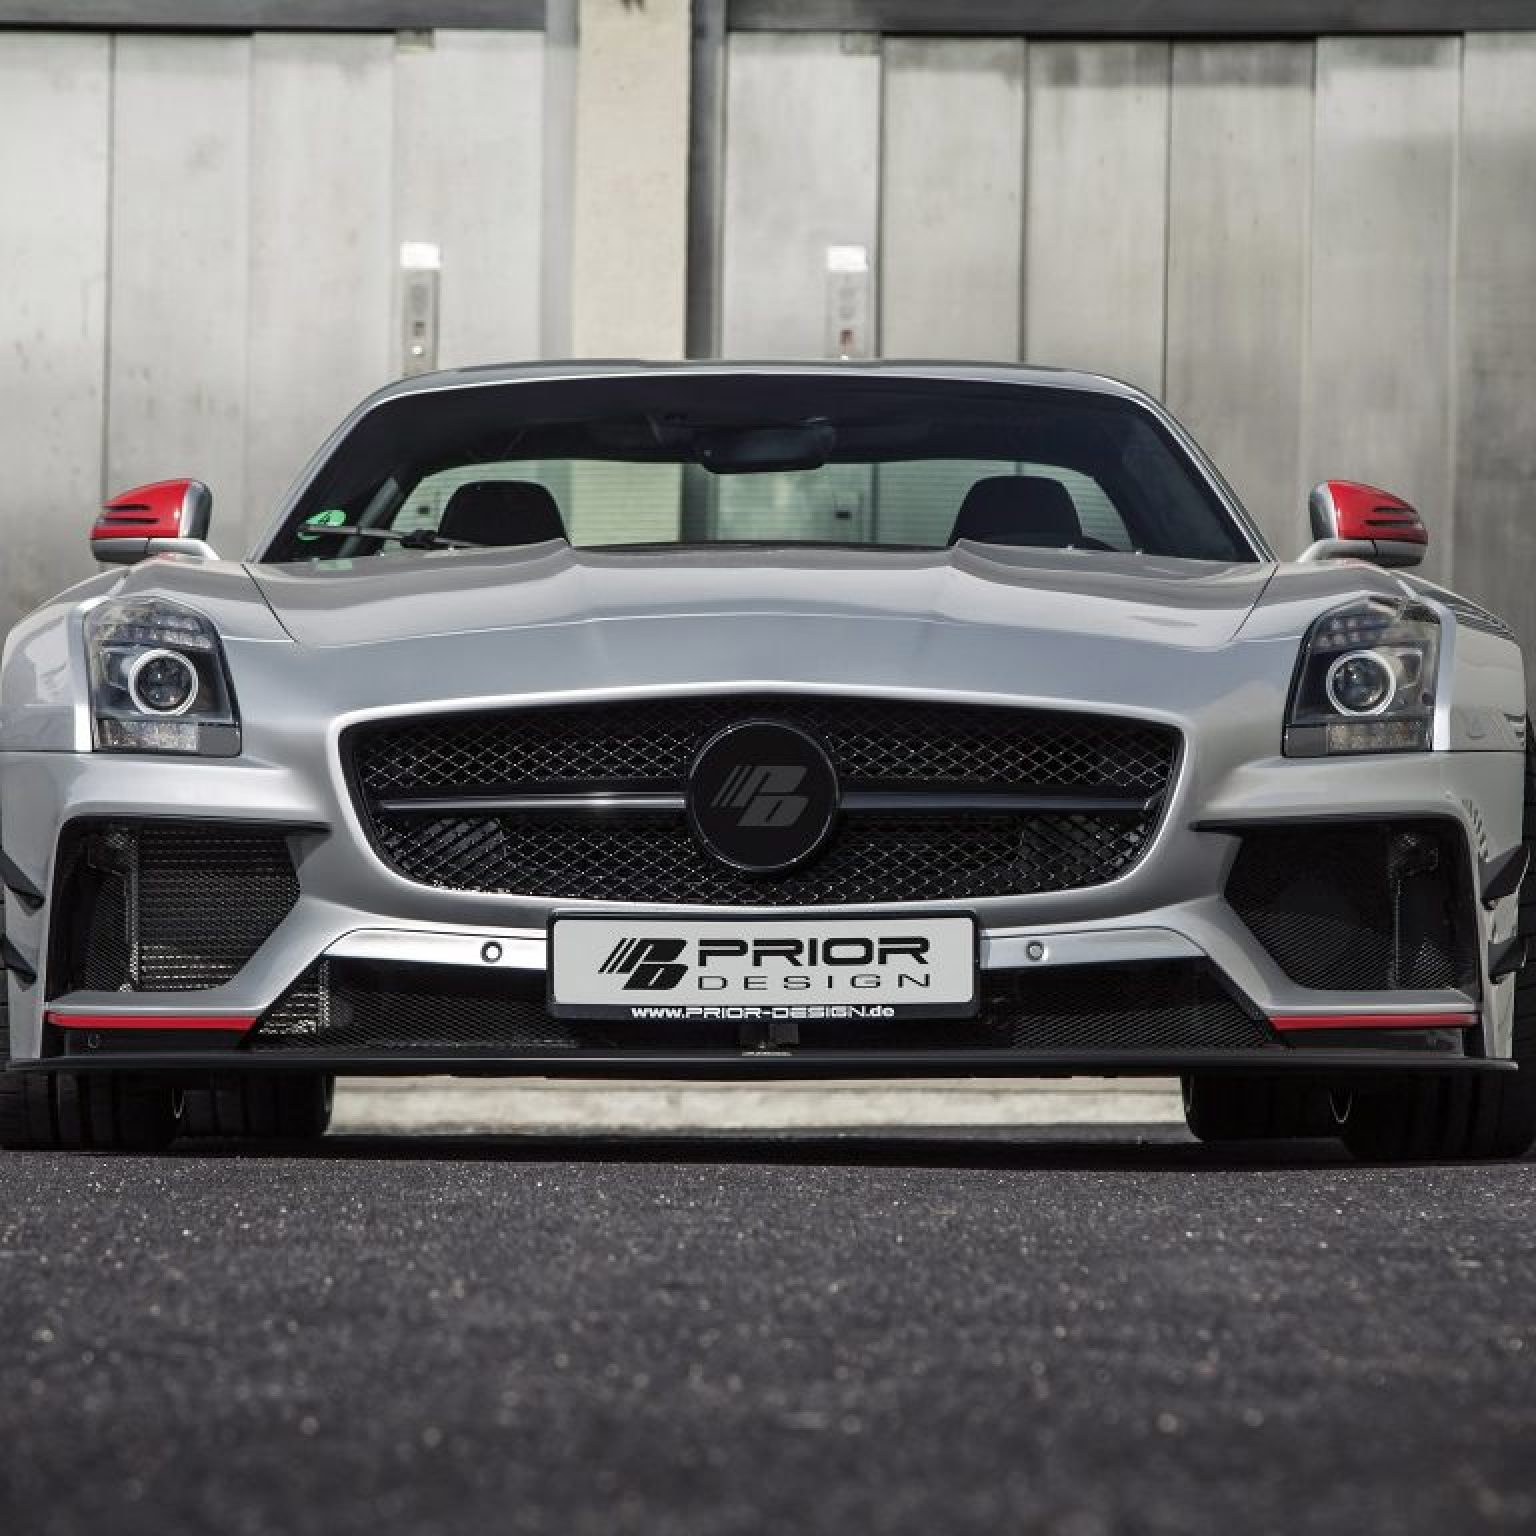 2015 AMG Mercedes SLS PD 900 GT WB C197 by Prior Design